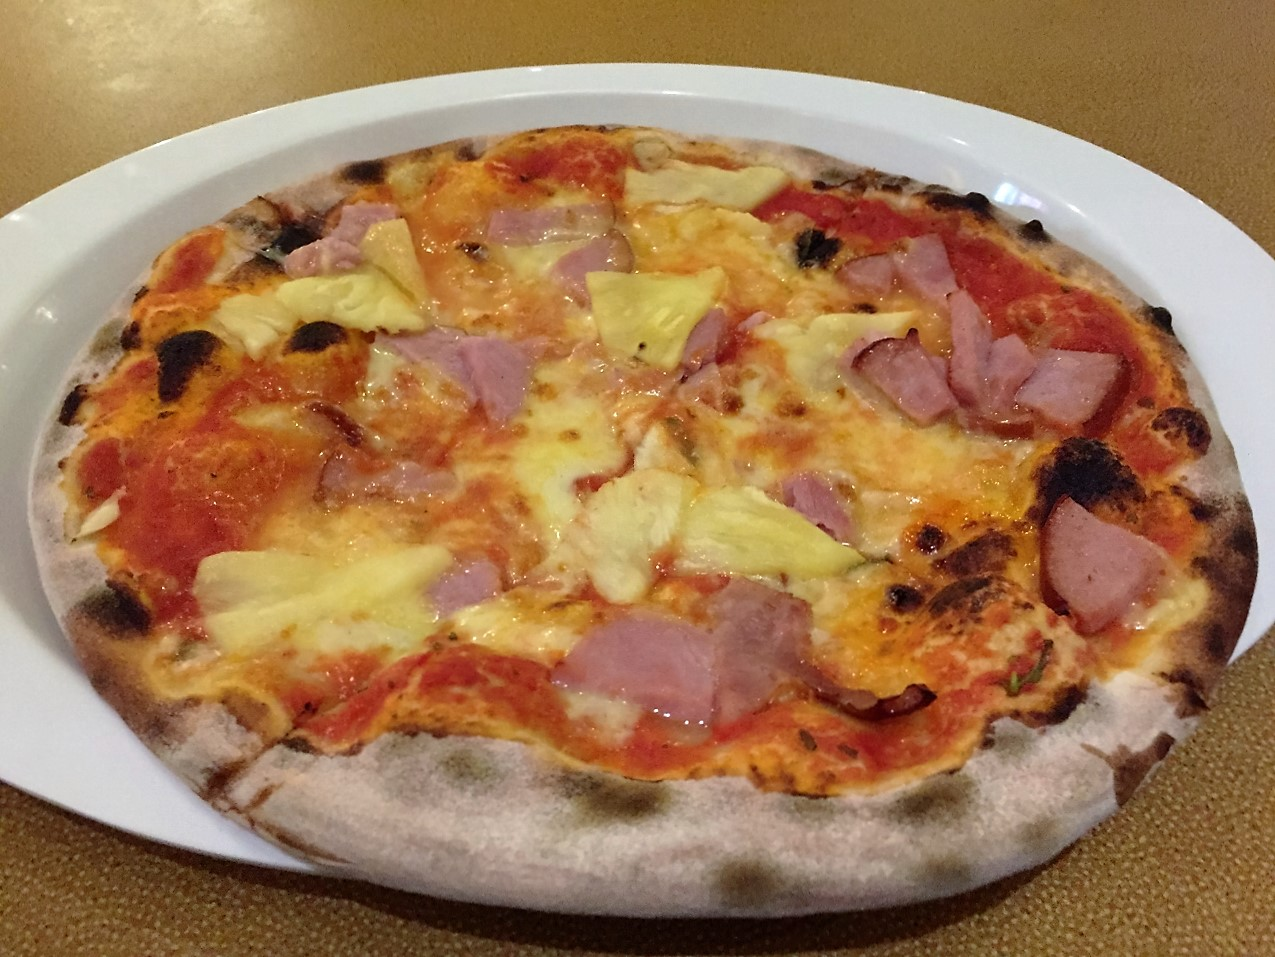 Our delicious Hawaiian base from Pizza Pirate on Carnival Spirit.